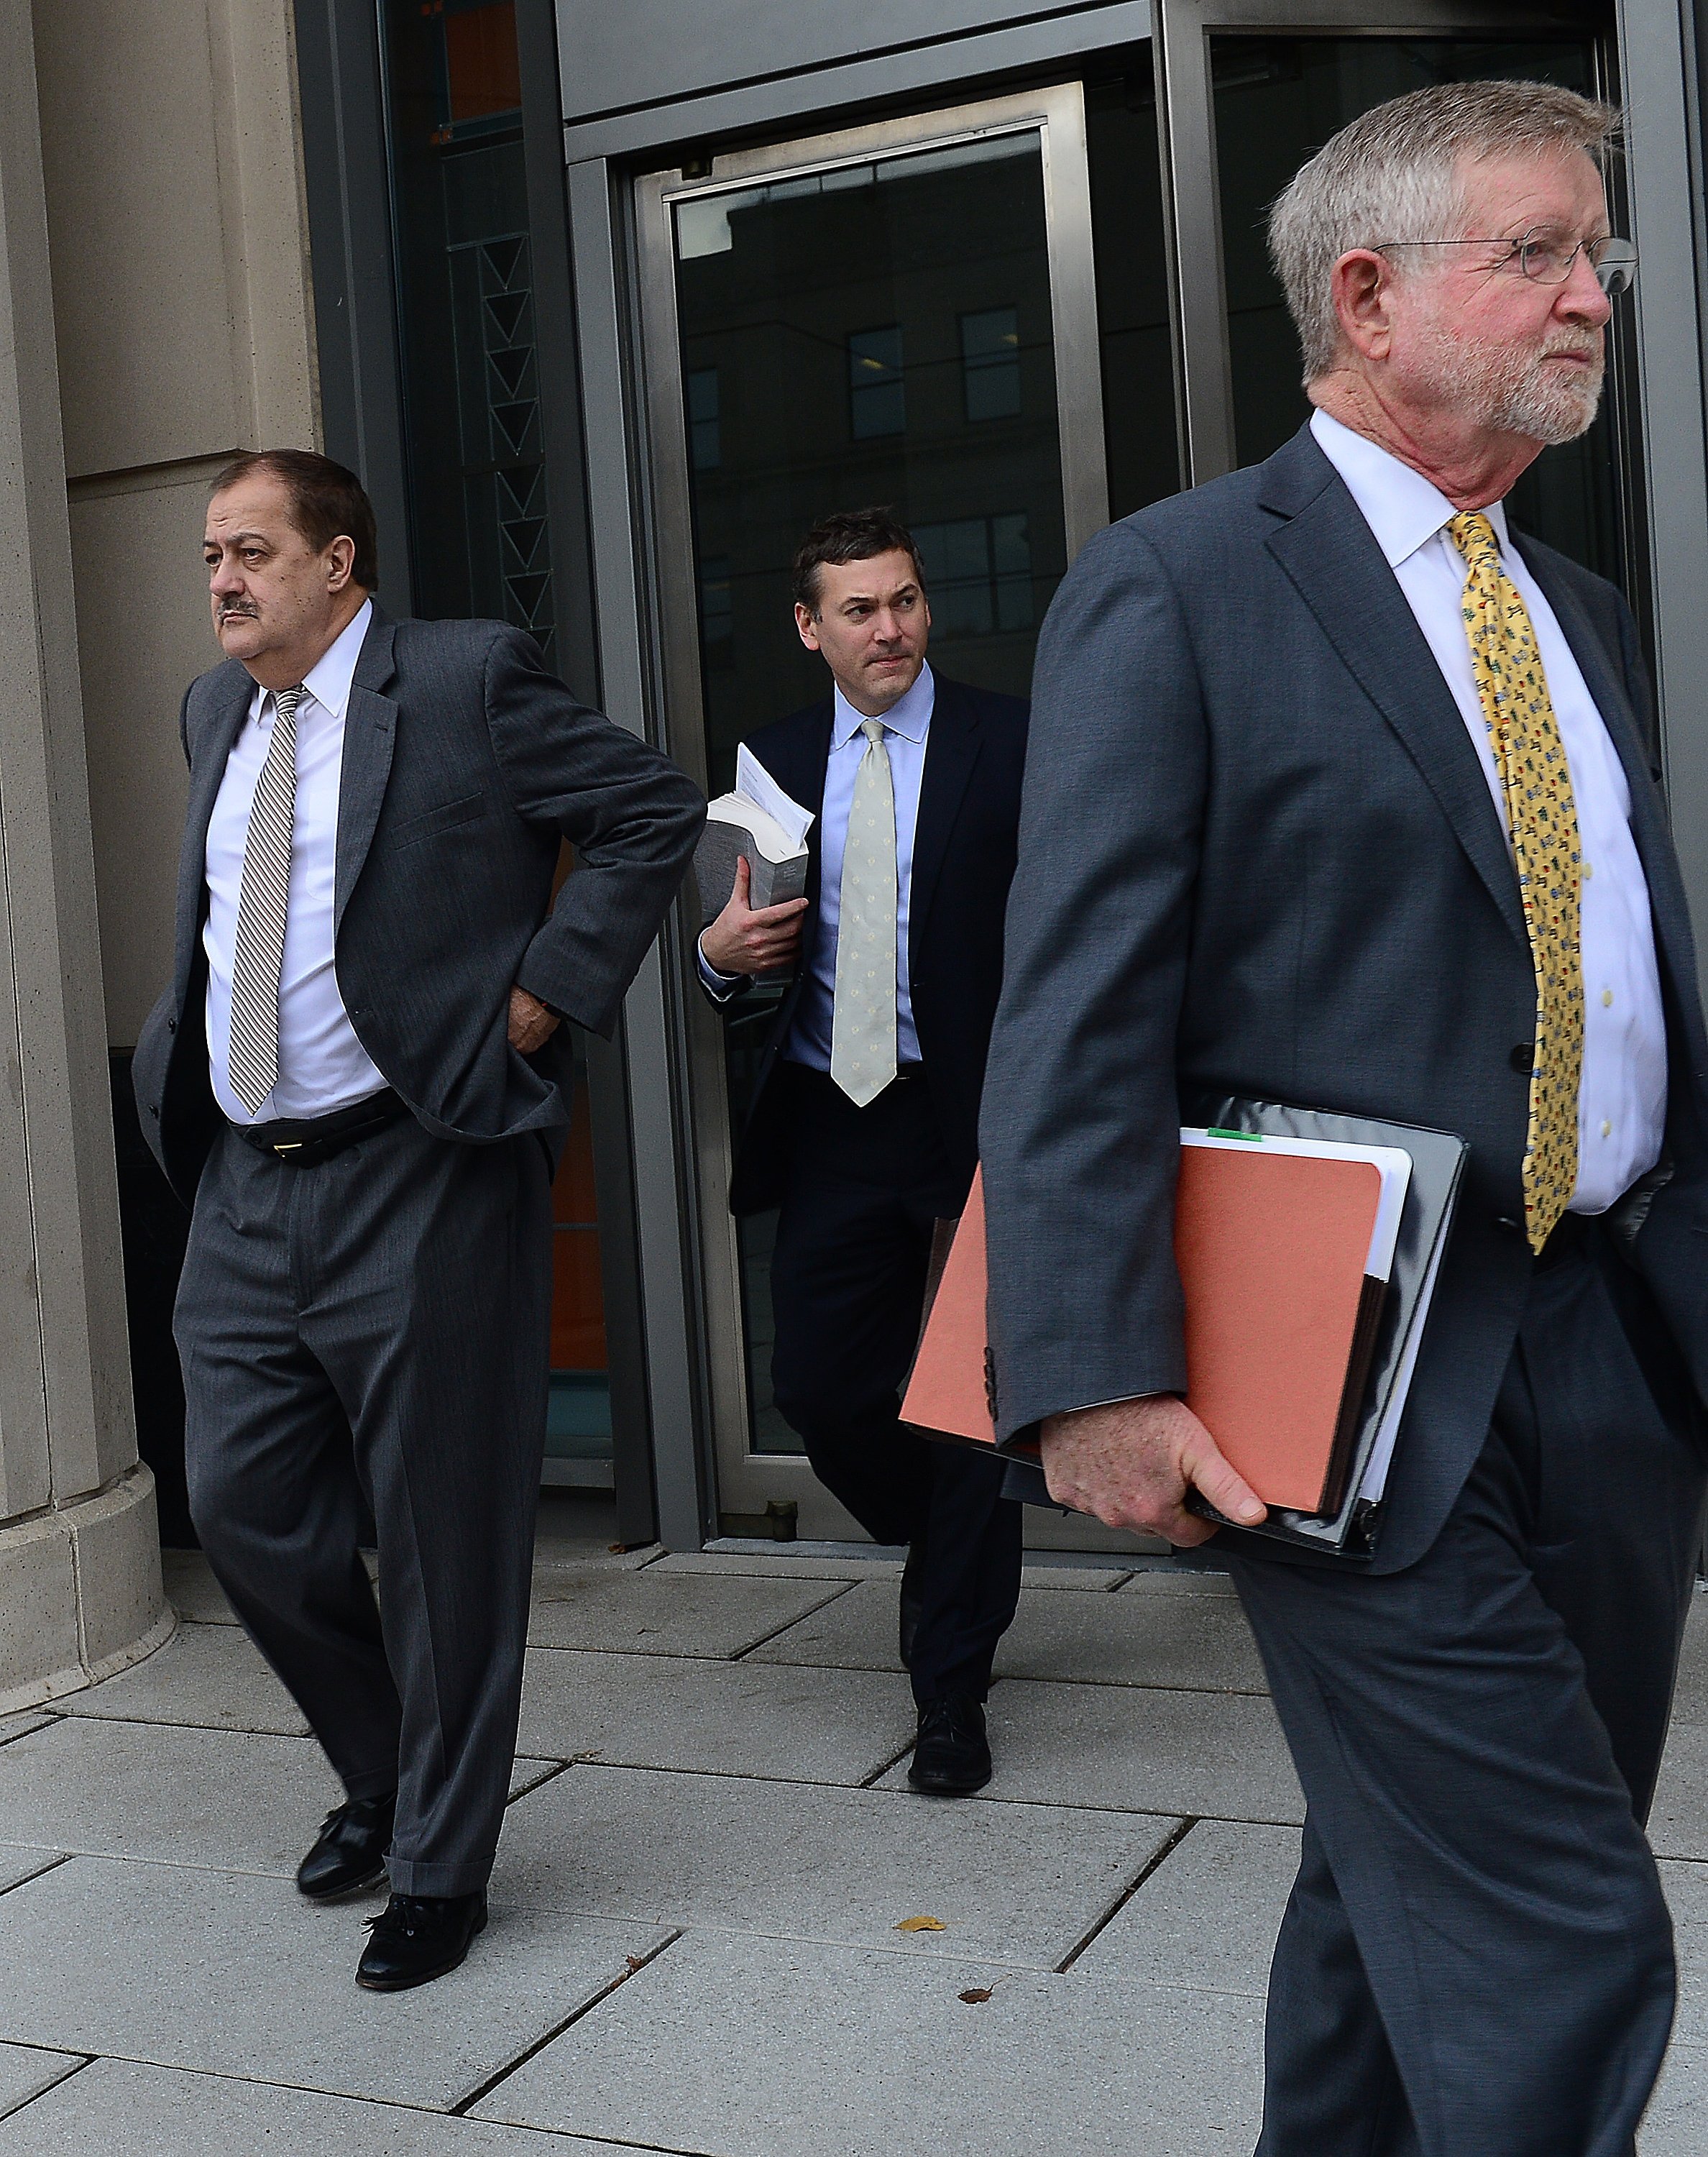 F. BRIAN FERGUSON | Gazette-Mail Don Blankenship, left, and his legal team leave federal court on Wednesday after a juror fell ill.